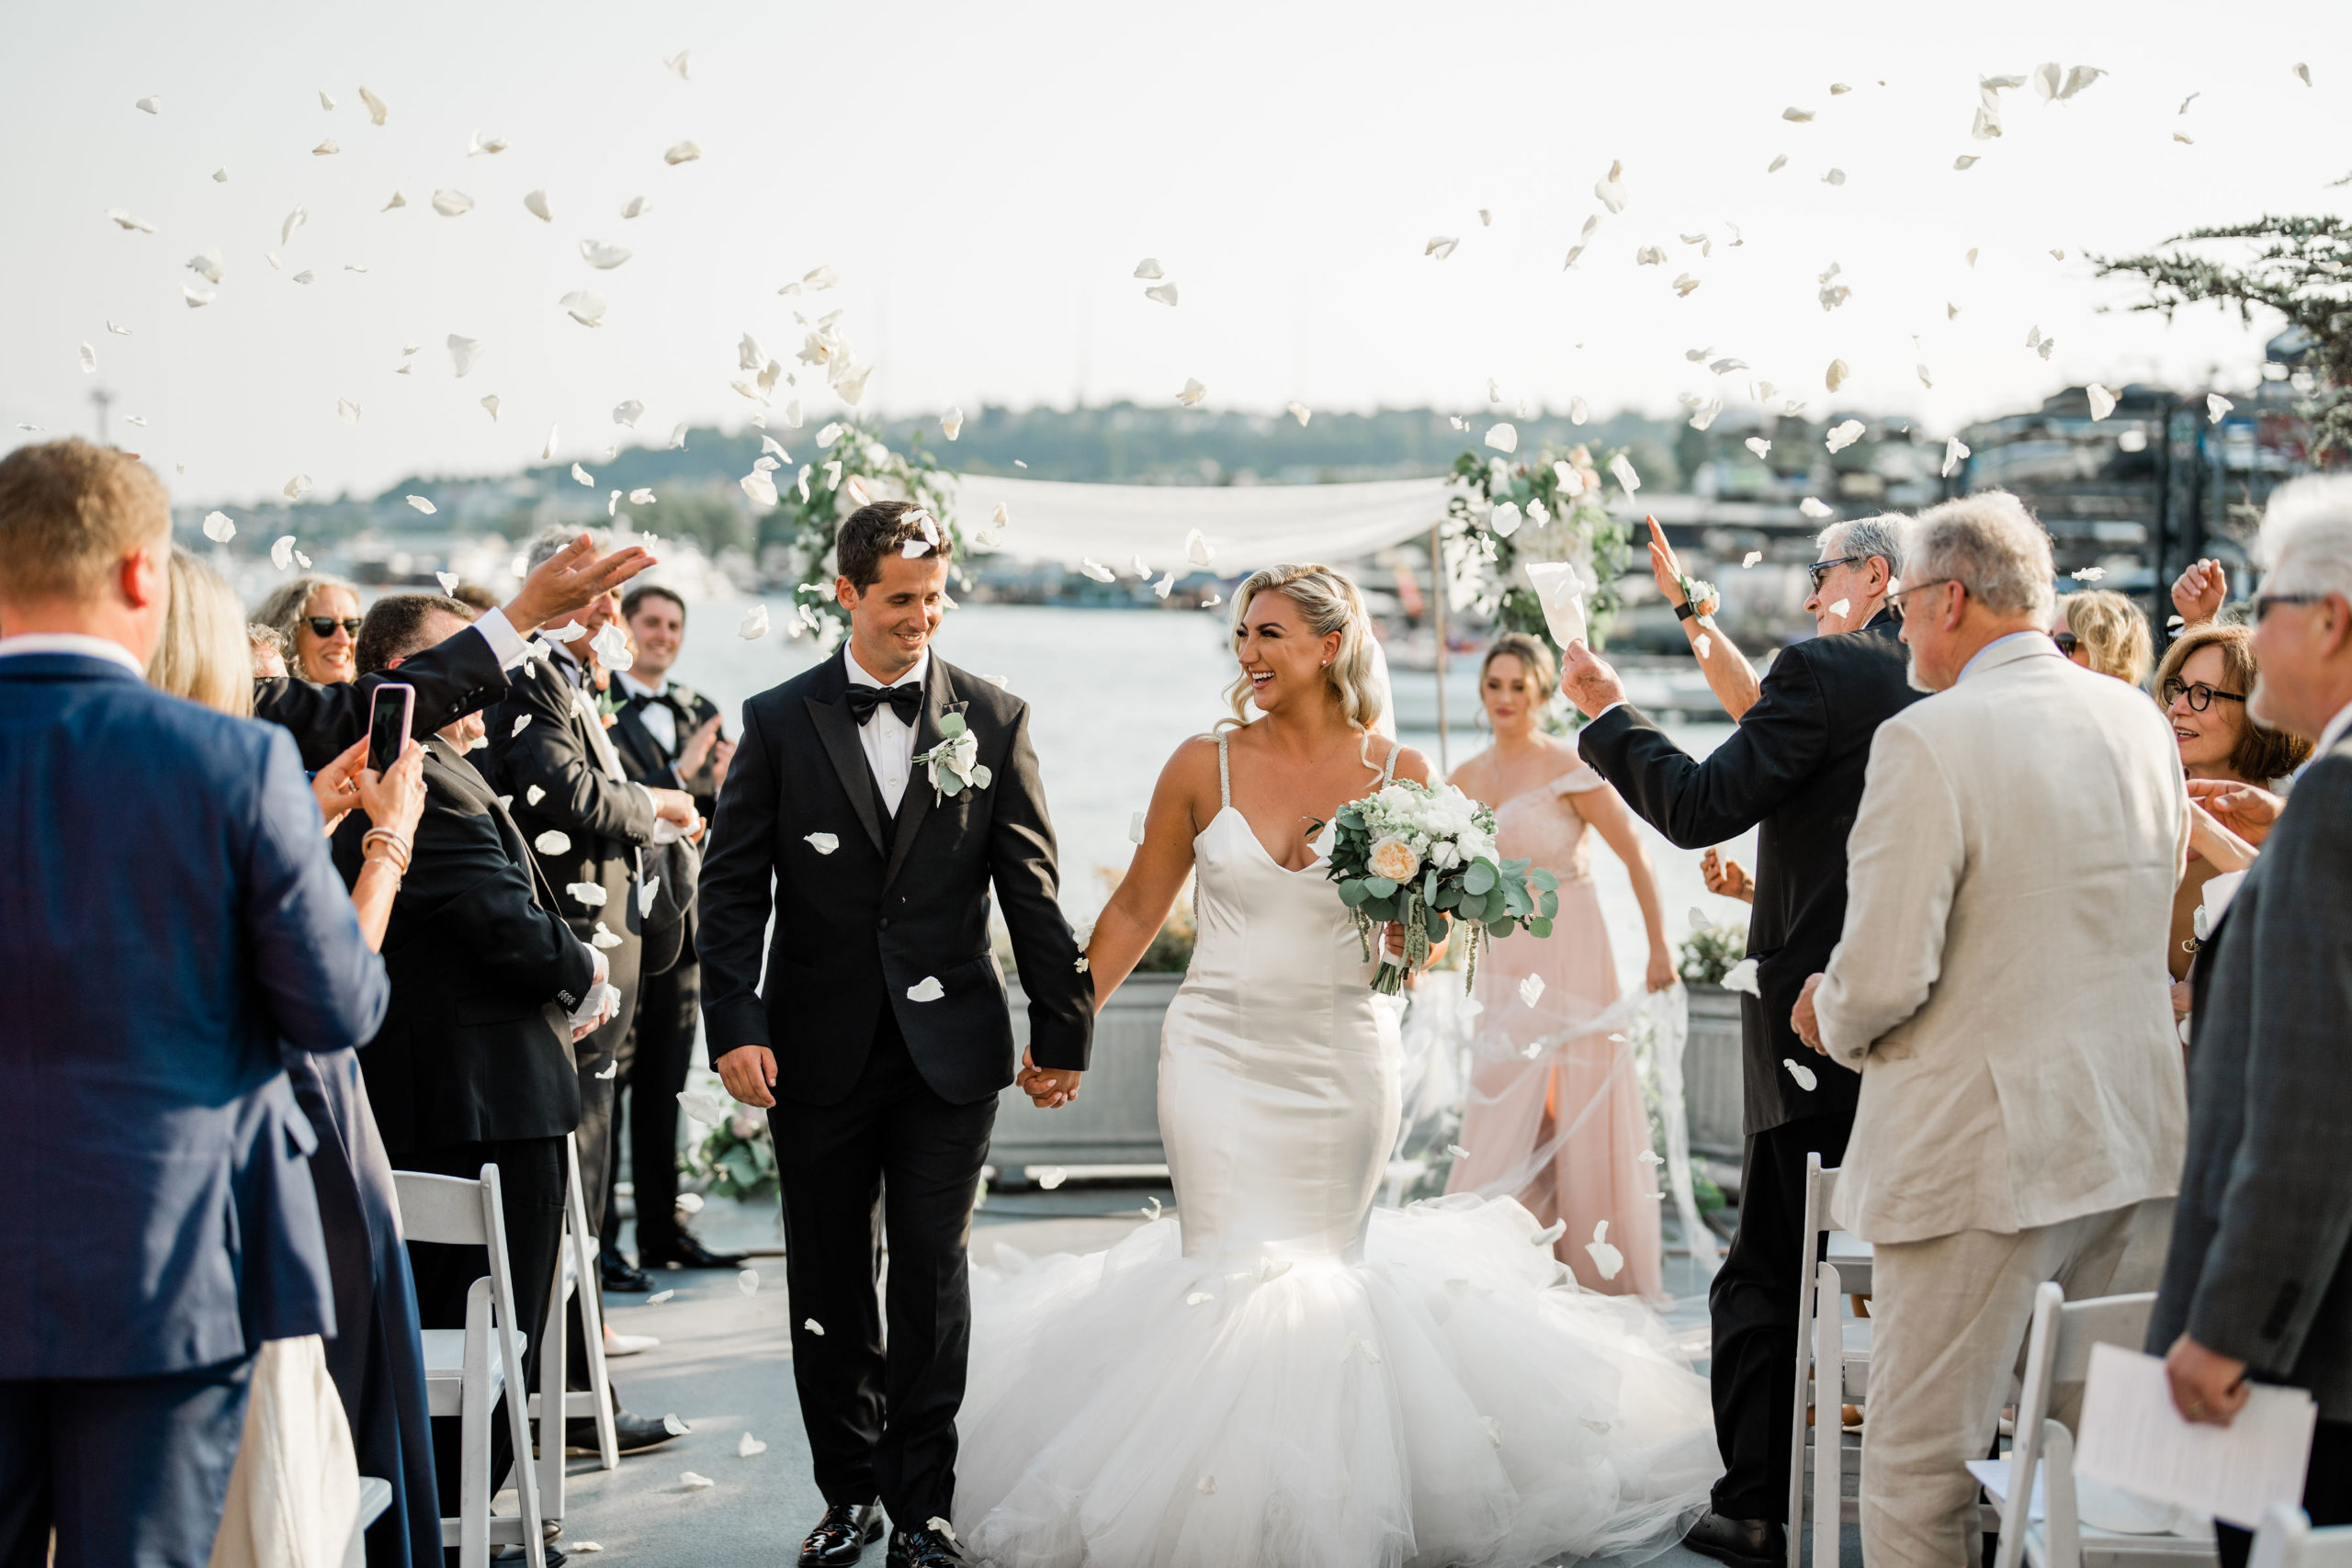 guests throw confetti as husband and wife walk down aisle on MV Skanso